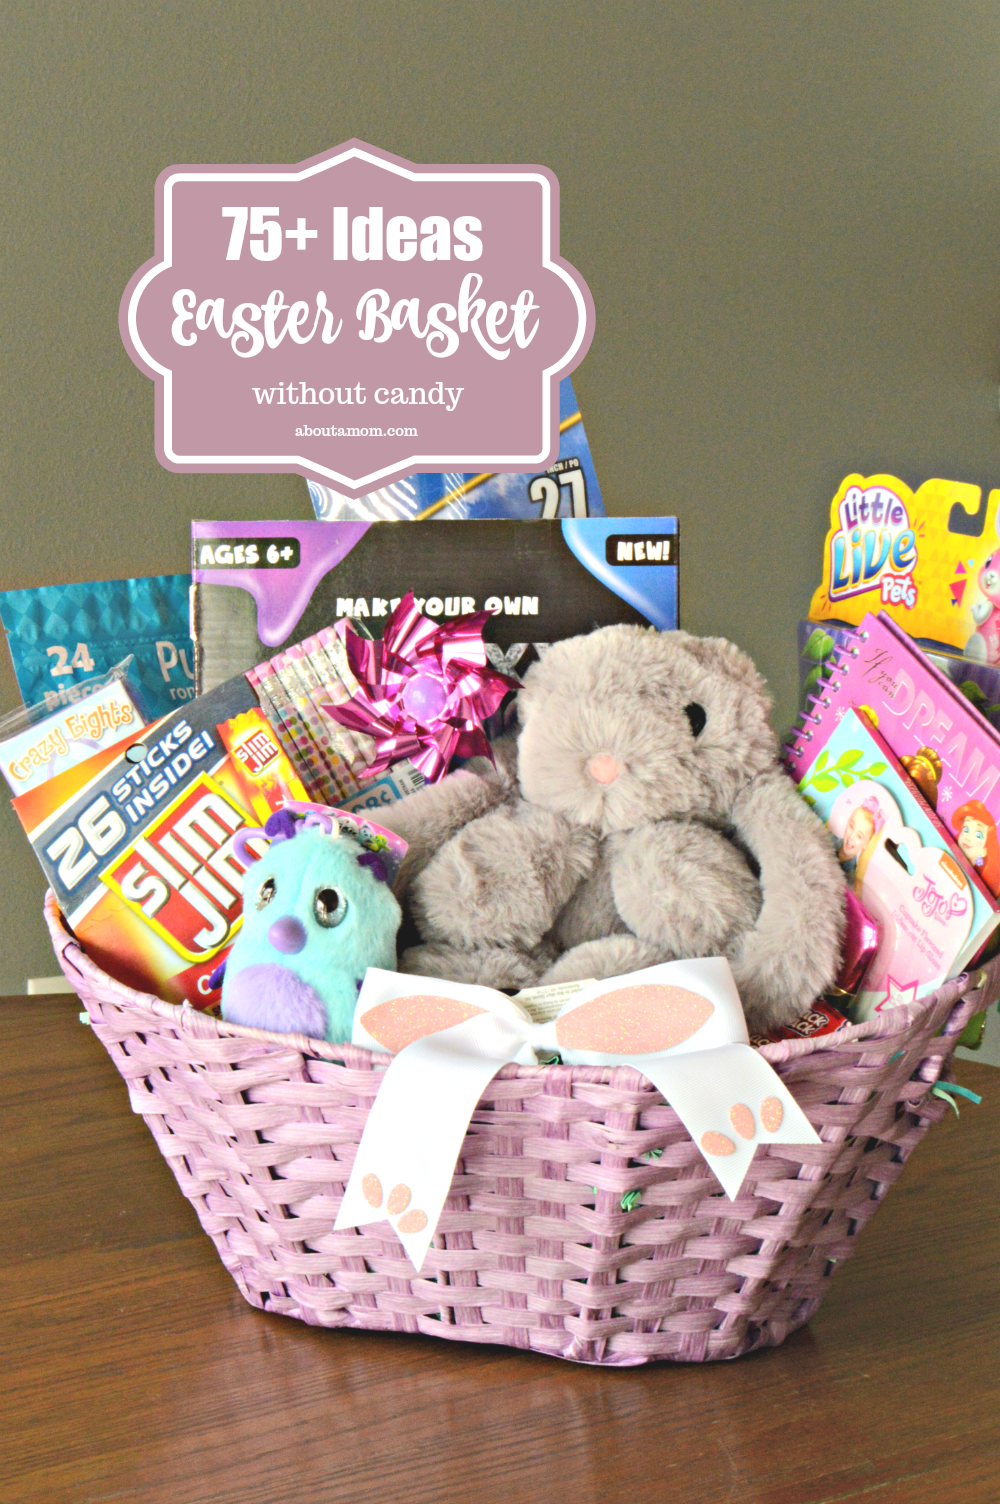 75 fun easter basket ideas about a mom are you trying to avoid sugar crazed children this easter heres a list of negle Image collections